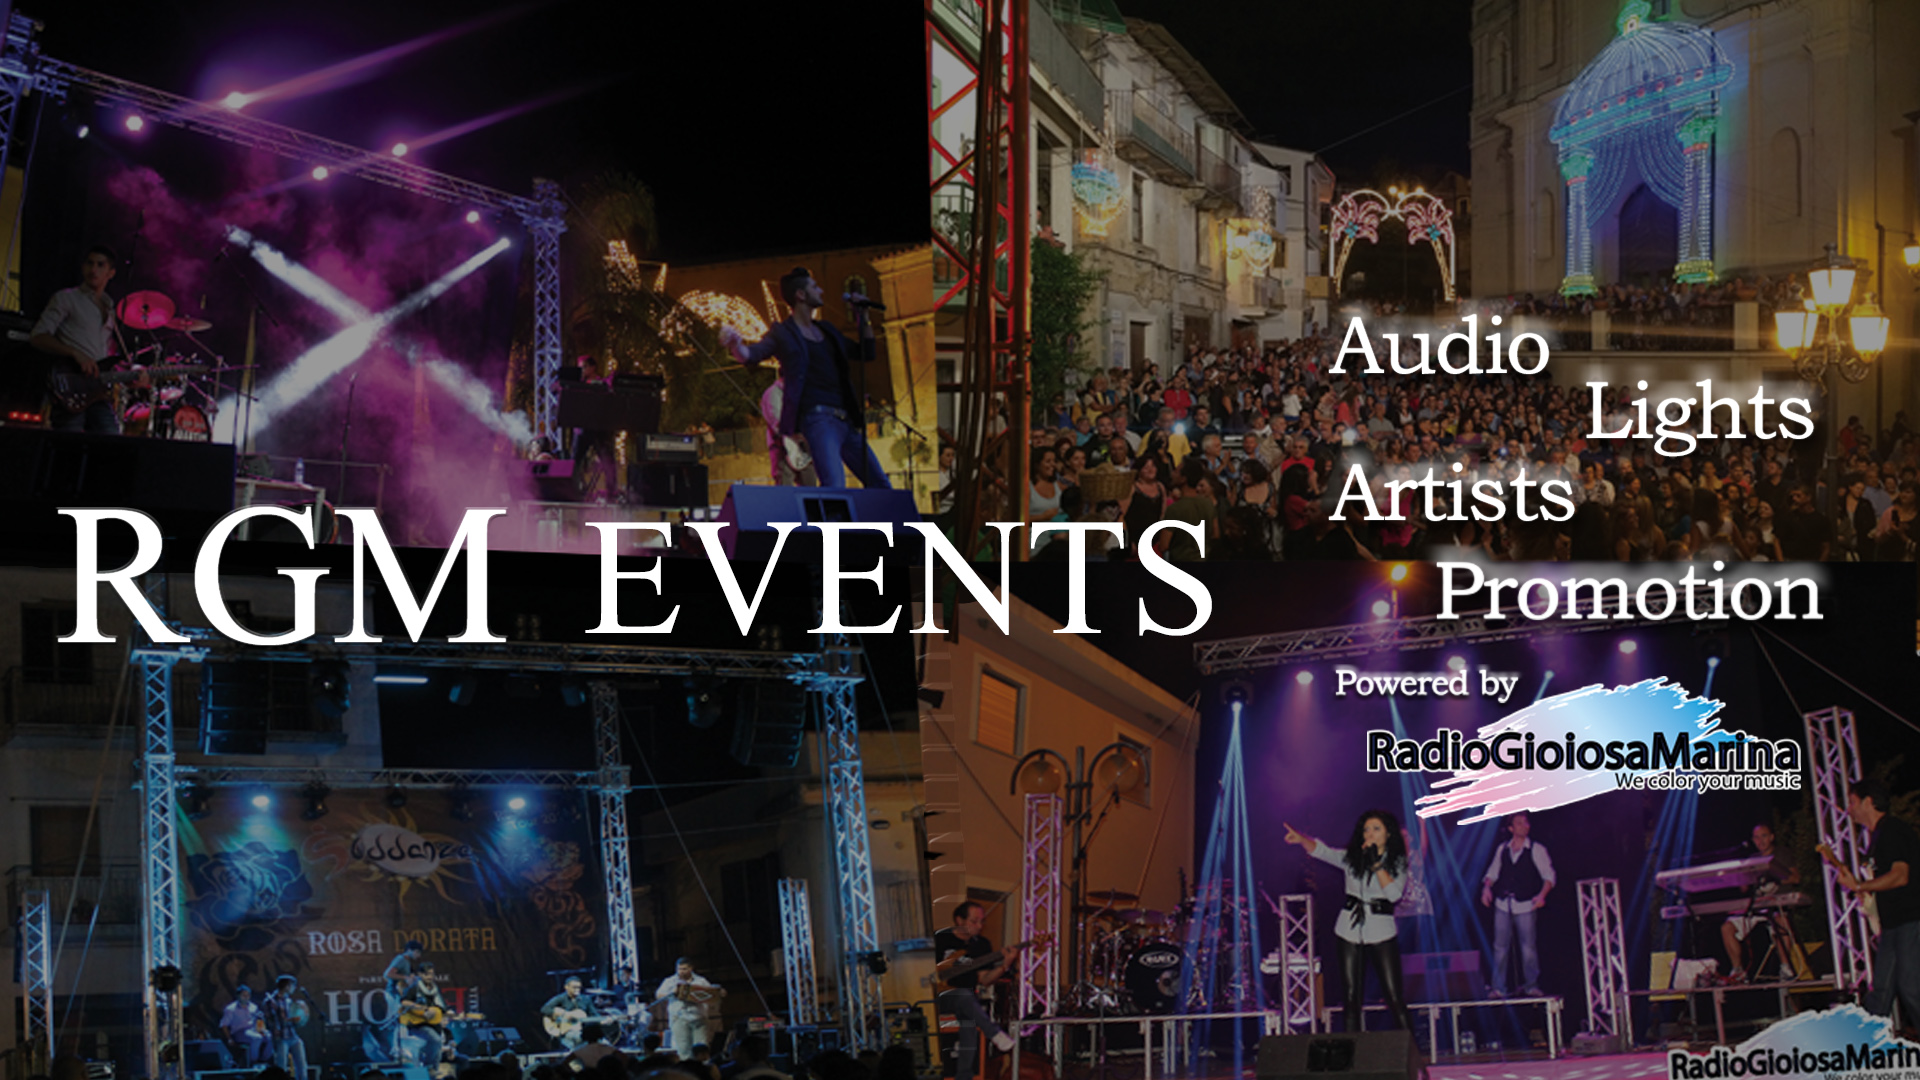 Banner orizzontale RGM EVENTS